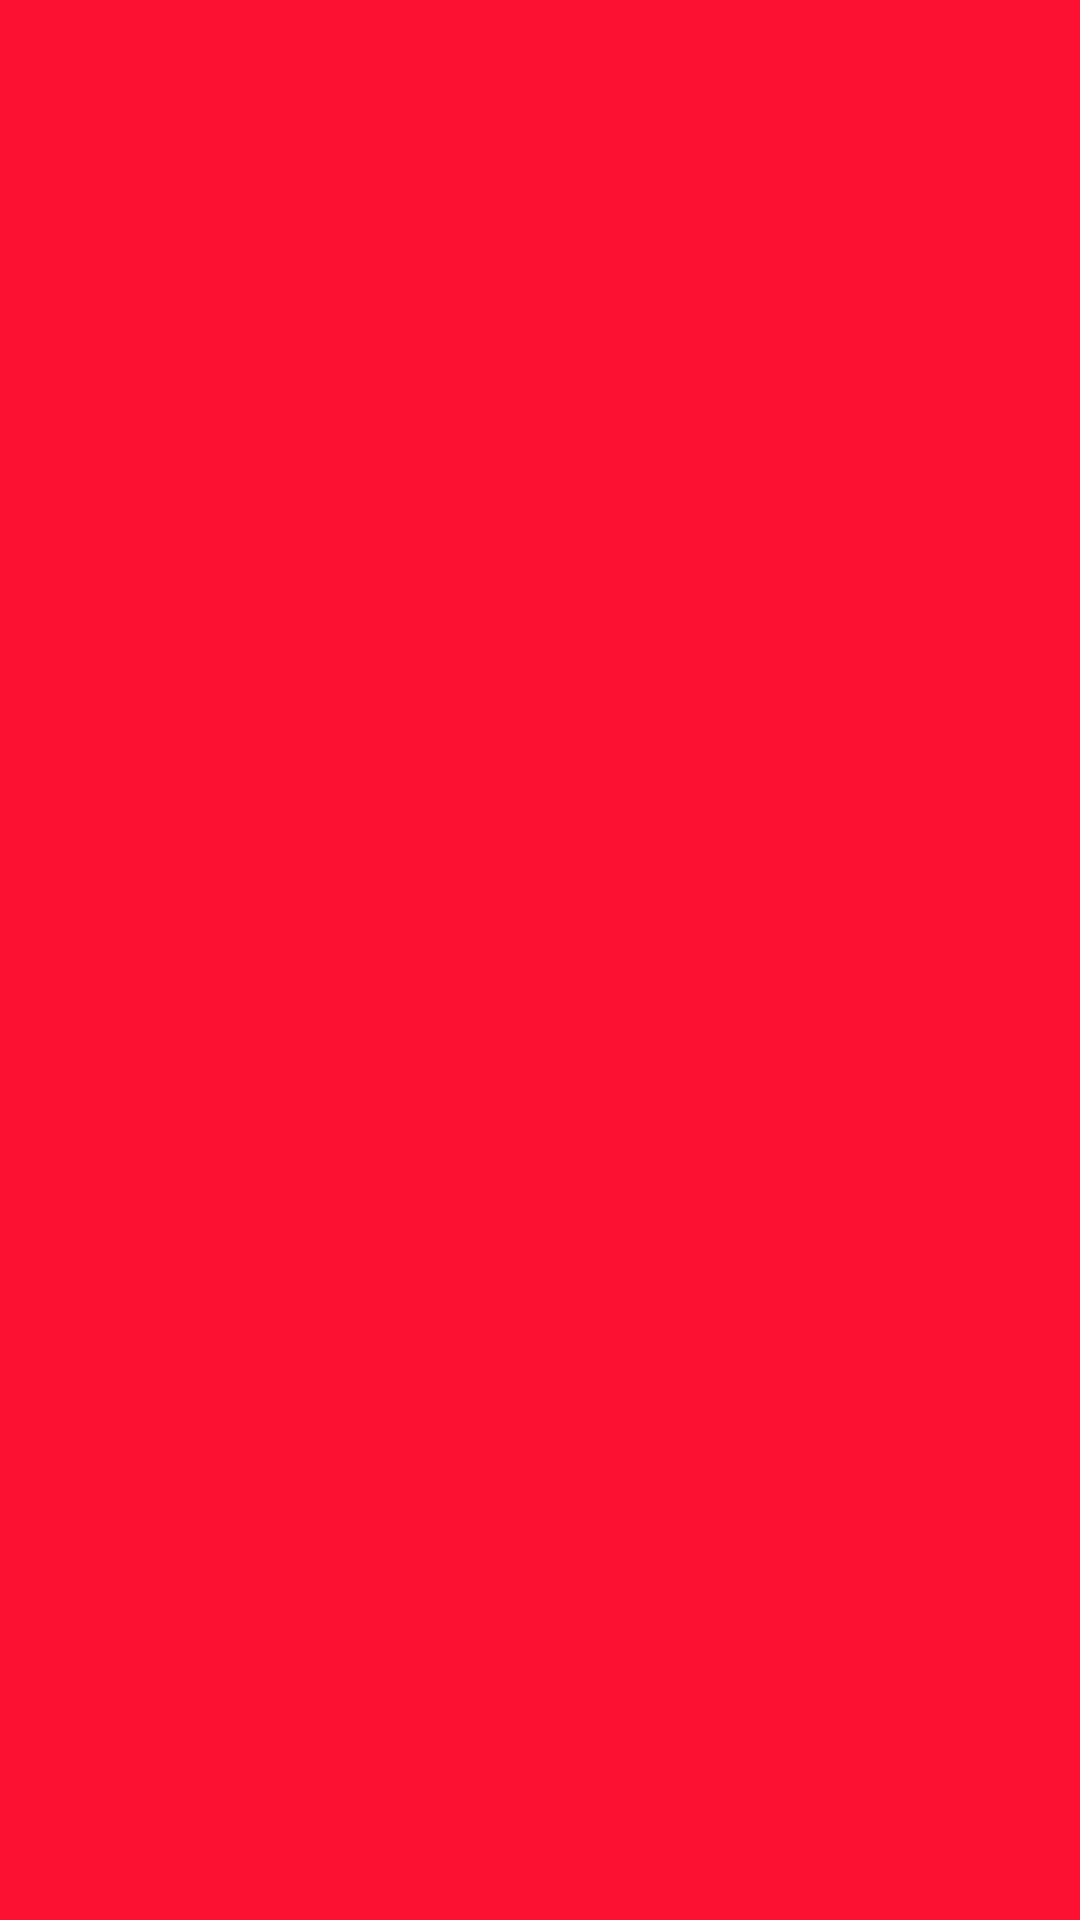 1080x1920 Tractor Red Solid Color Background